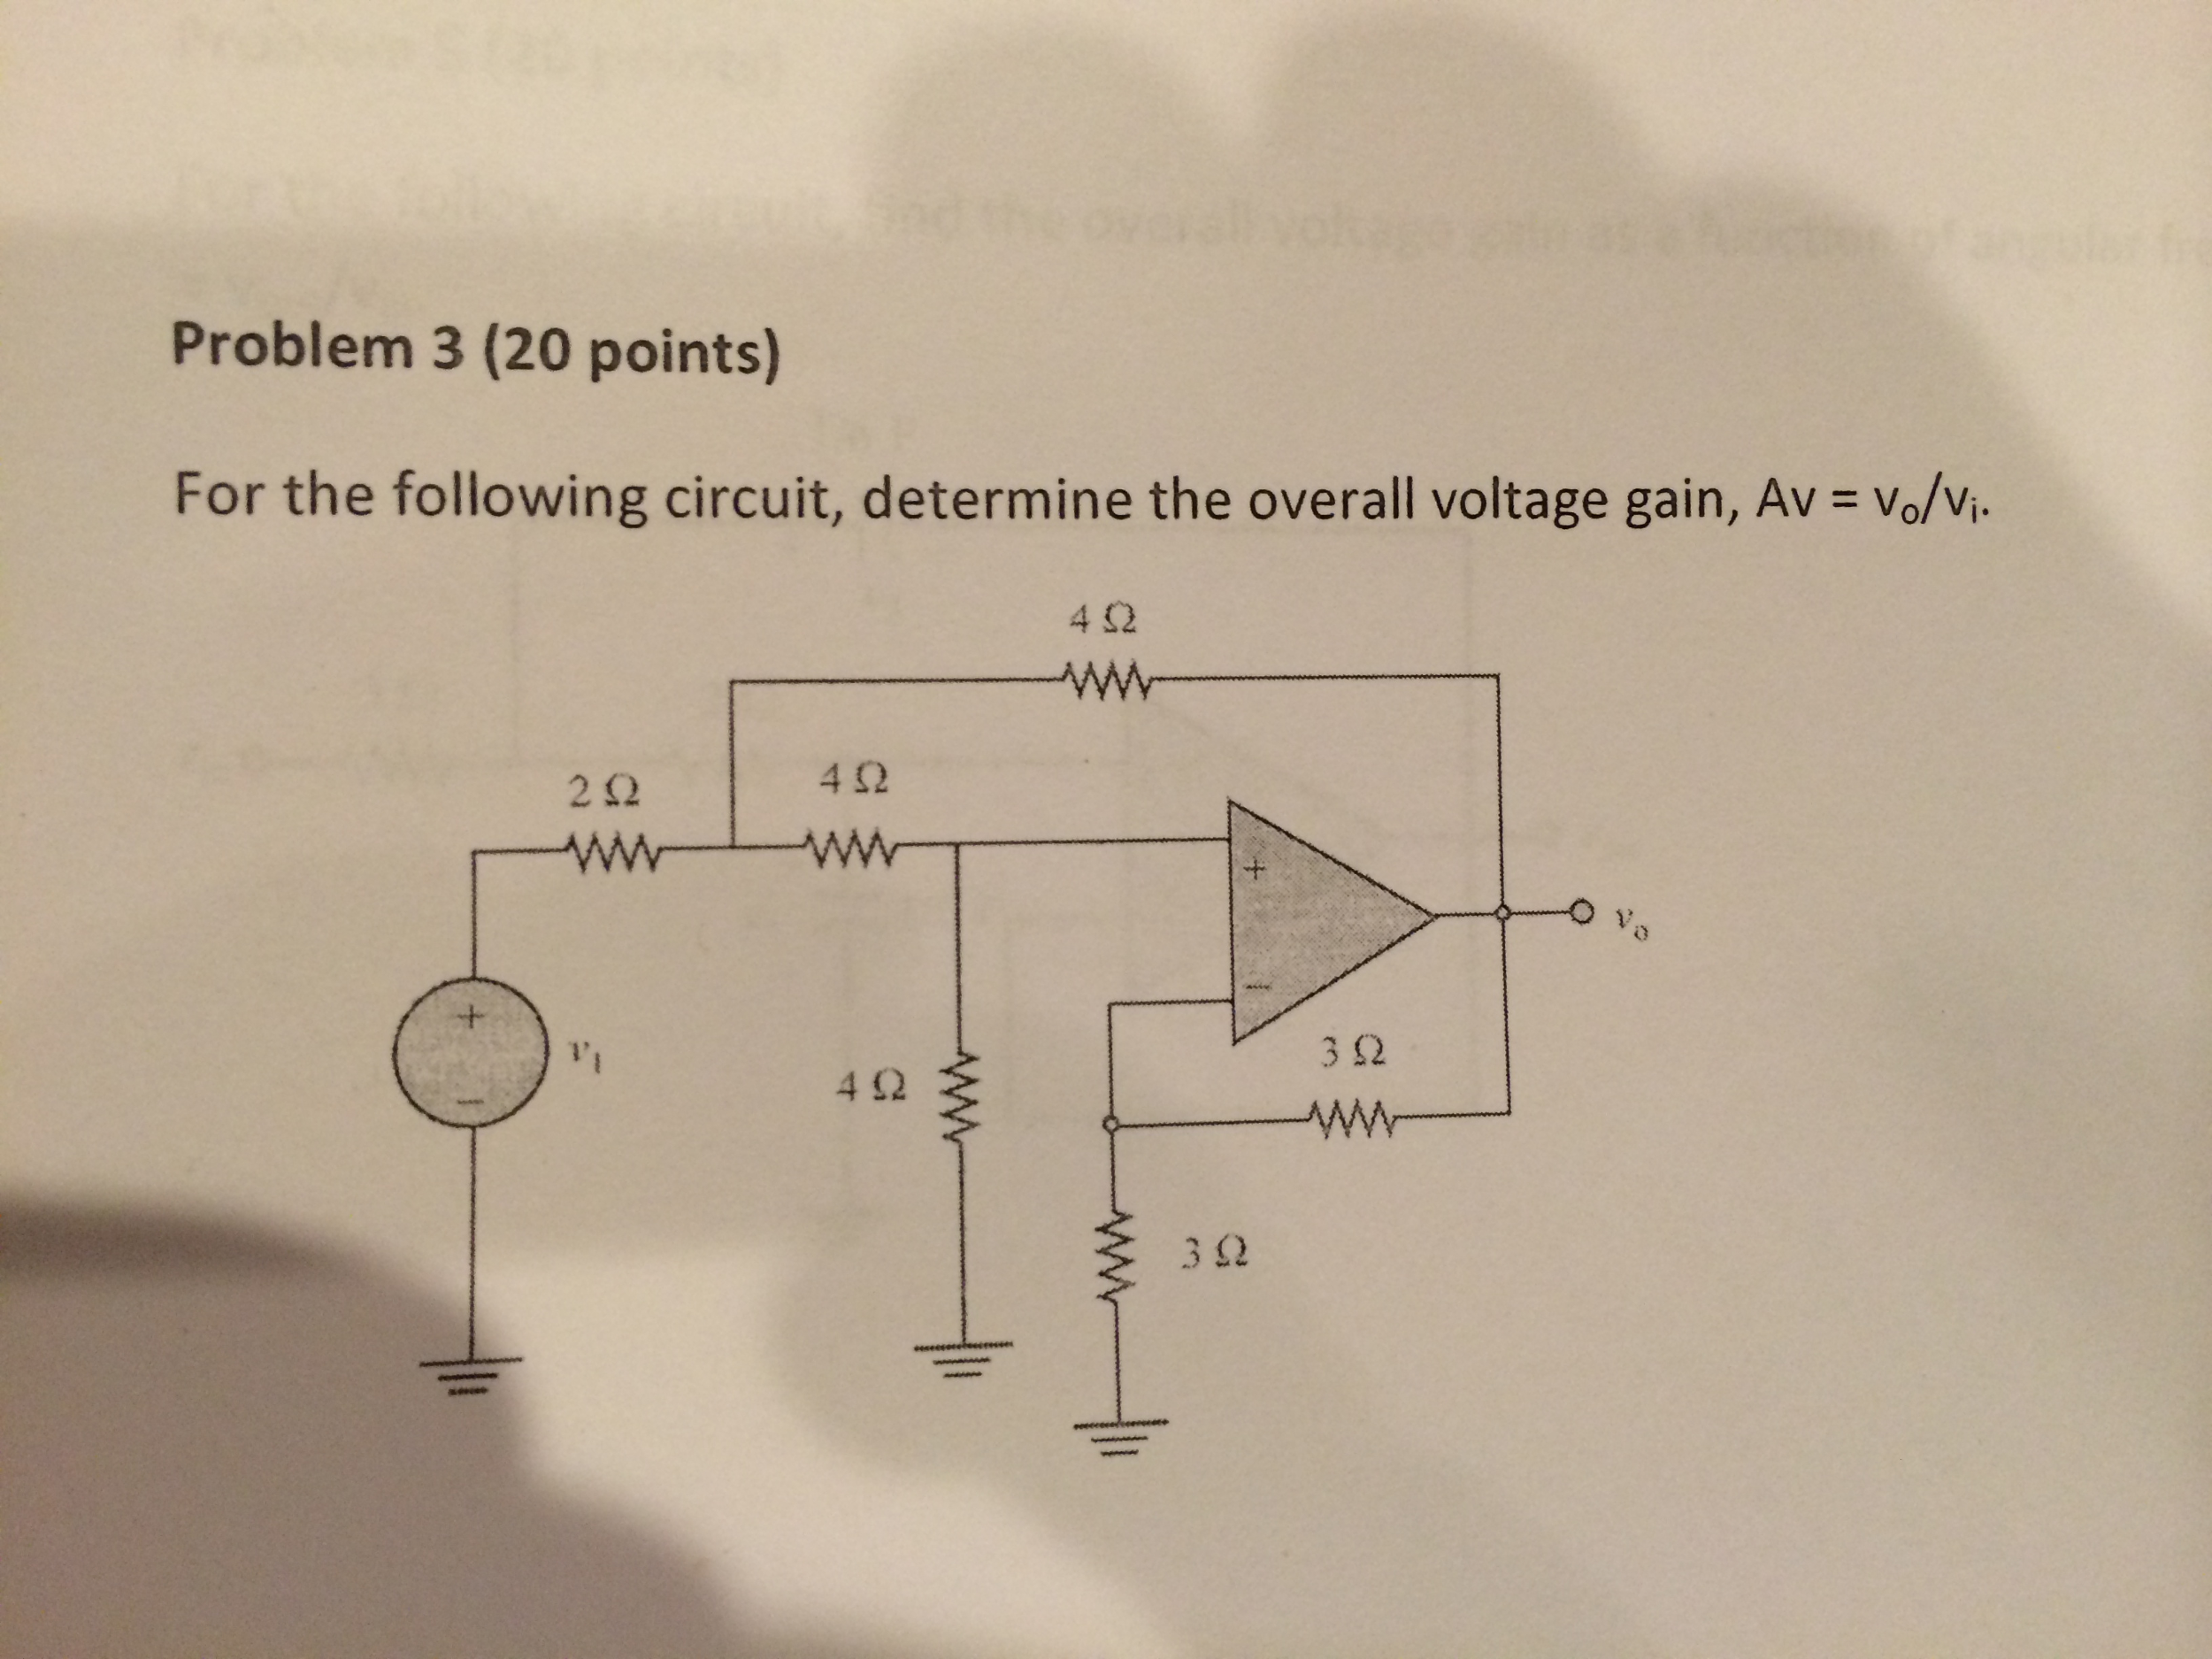 For the following circuit, determine the overall v